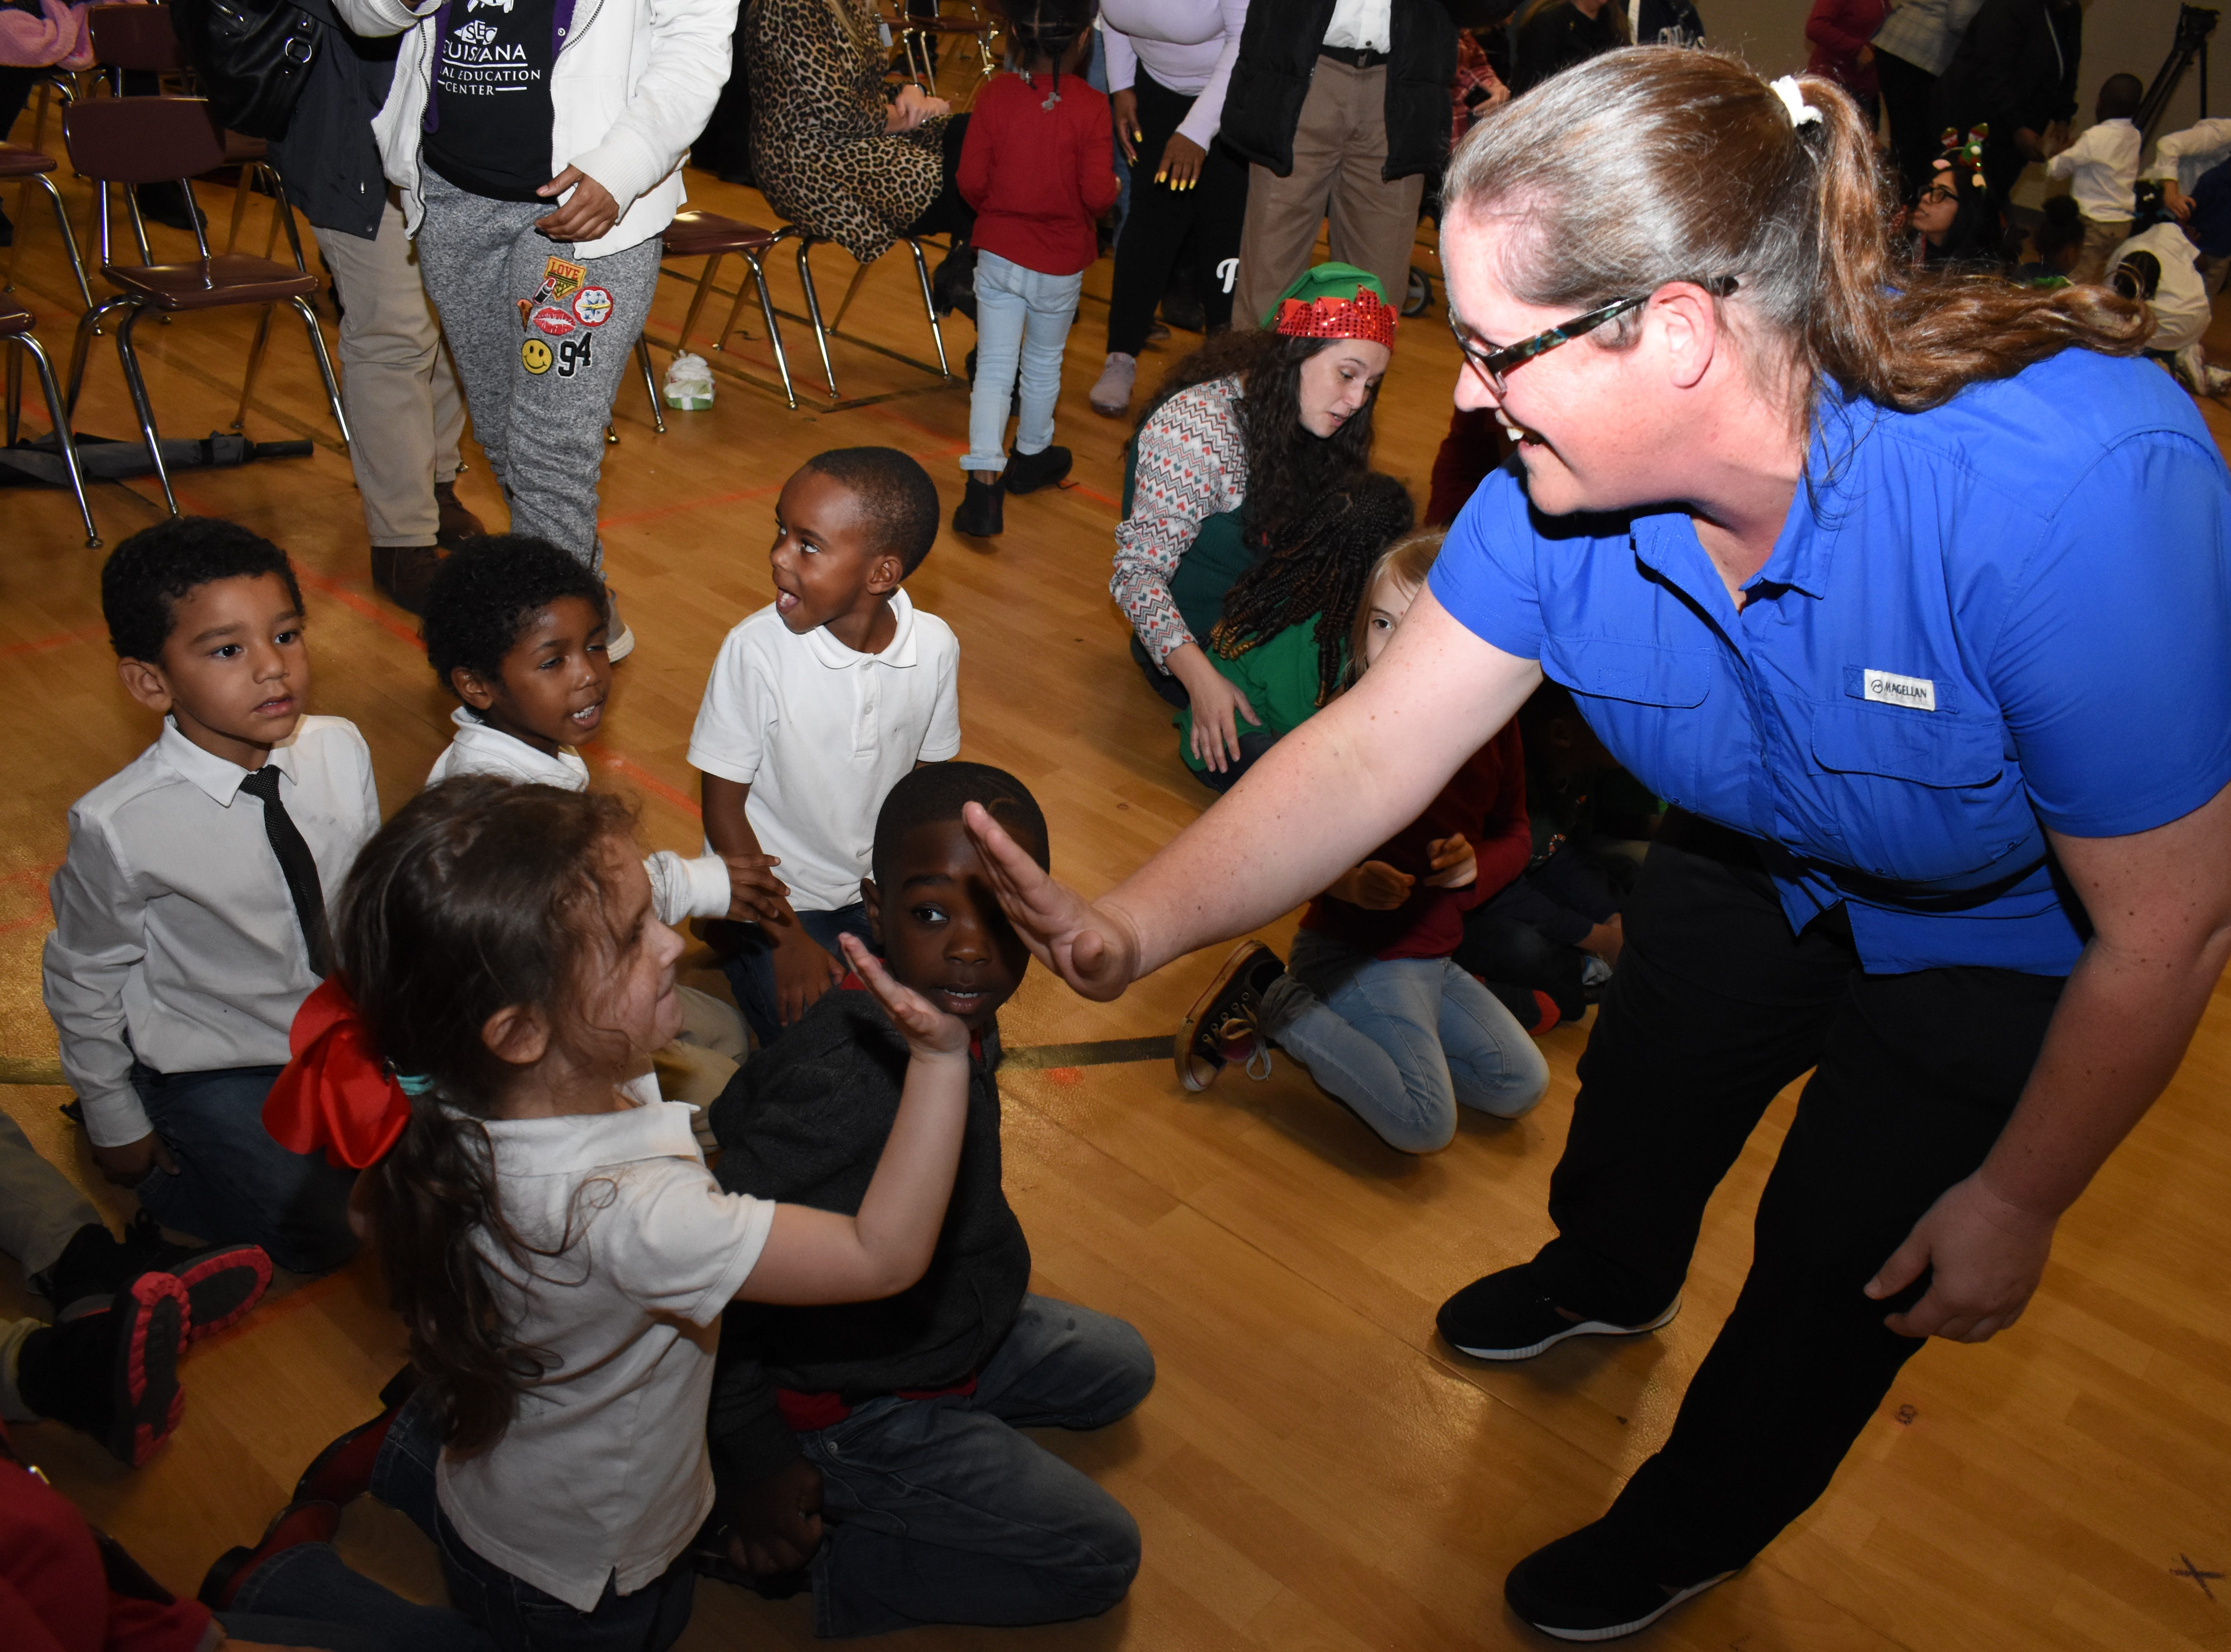 Laurie Meche, operations manager at the Alexandria Academy Sports + Outdoors, high-fives Mabel Brasher Montessori Elementary School students after Academy surprised 30 Mabel Brasher  students with bicycles and helmets Wednesday, Dec. 19, 2018. The Mabel Brasher students were among the 5,000 students in 16 states that were given bikes as part of Academy's holiday bike donation program. The bikes are a reward for children who have perfect attendance, academic performance, good behavior and may have a need for the gift.